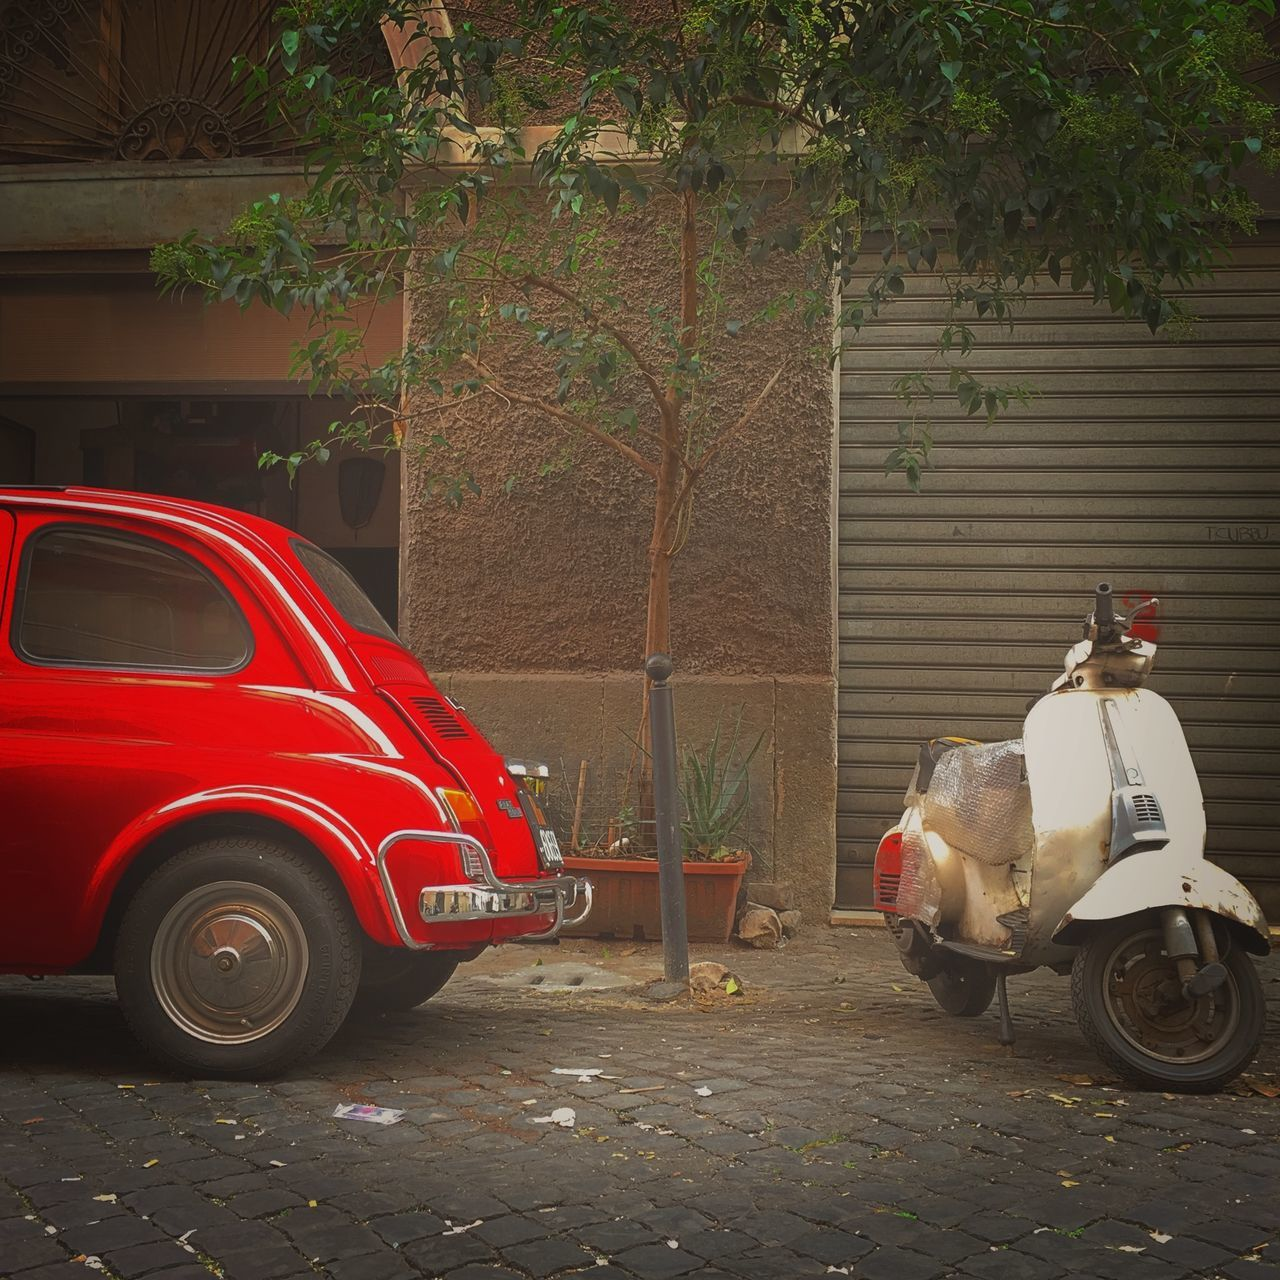 transportation, land vehicle, mode of transport, tree, red, car, stationary, outdoors, day, built structure, no people, architecture, branch